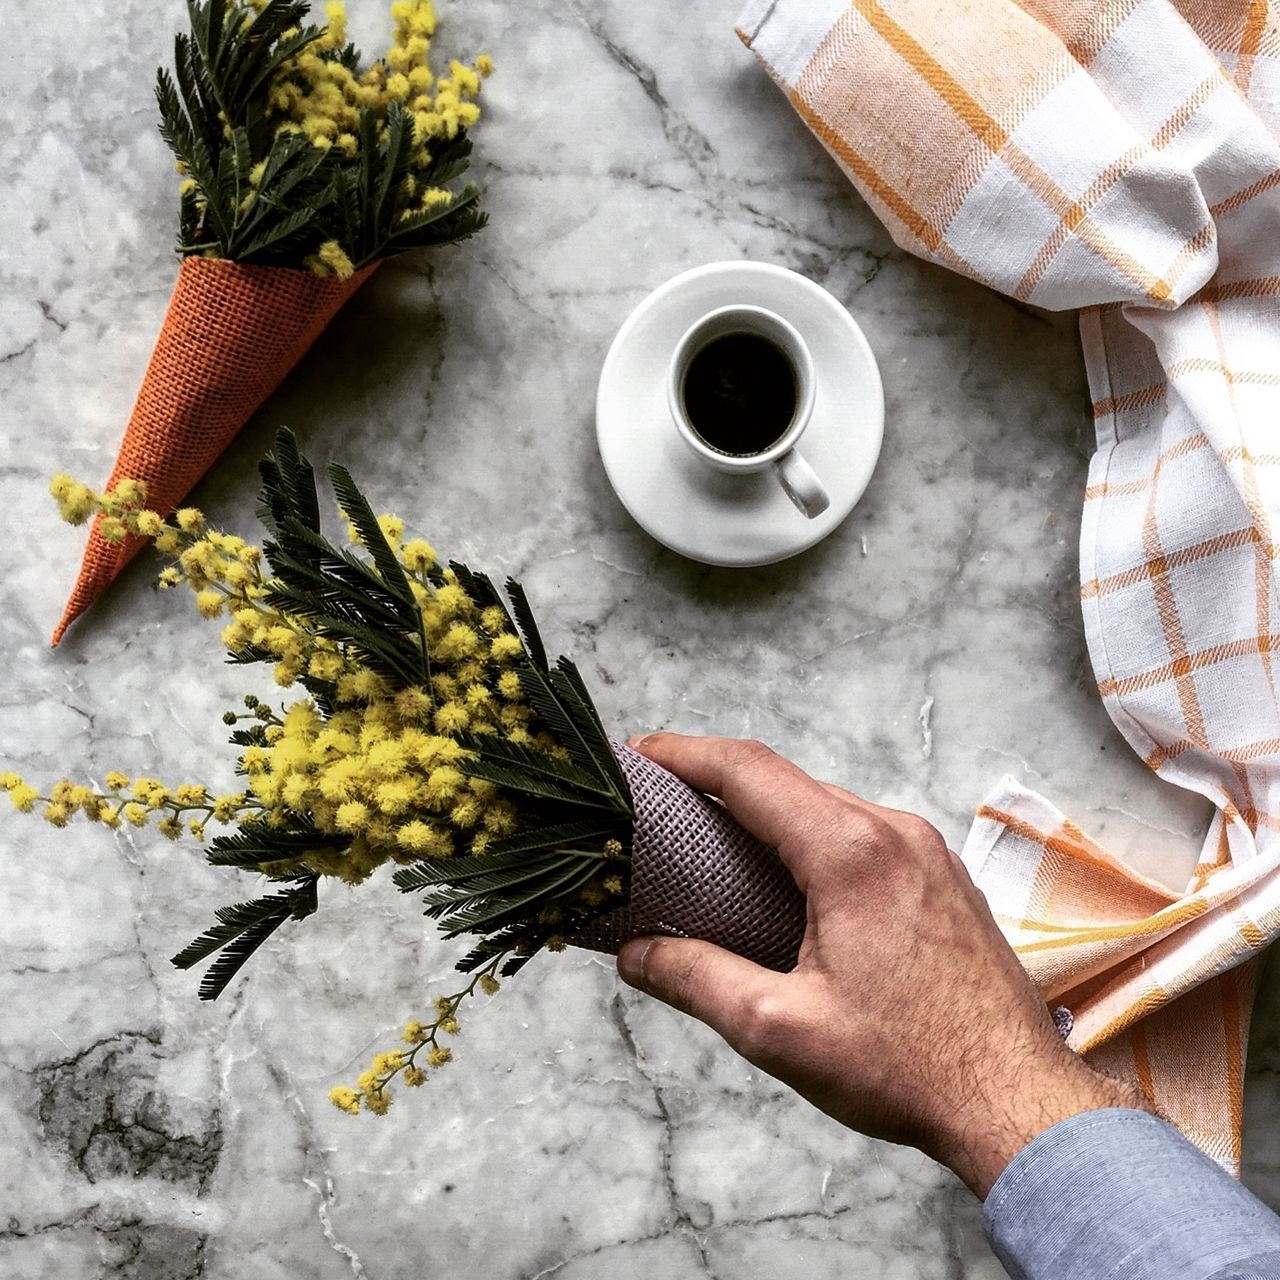 Abundance Arrangement Breakfast Choice Close-up Coffe Composition Cropped Detail Flowers Focus On Foreground Food Holding Human Body Part Human Hand Midsection One Person Organic Selective Focus Showcase March Showing Studio Shot Unrecognizable Person Variation Woman